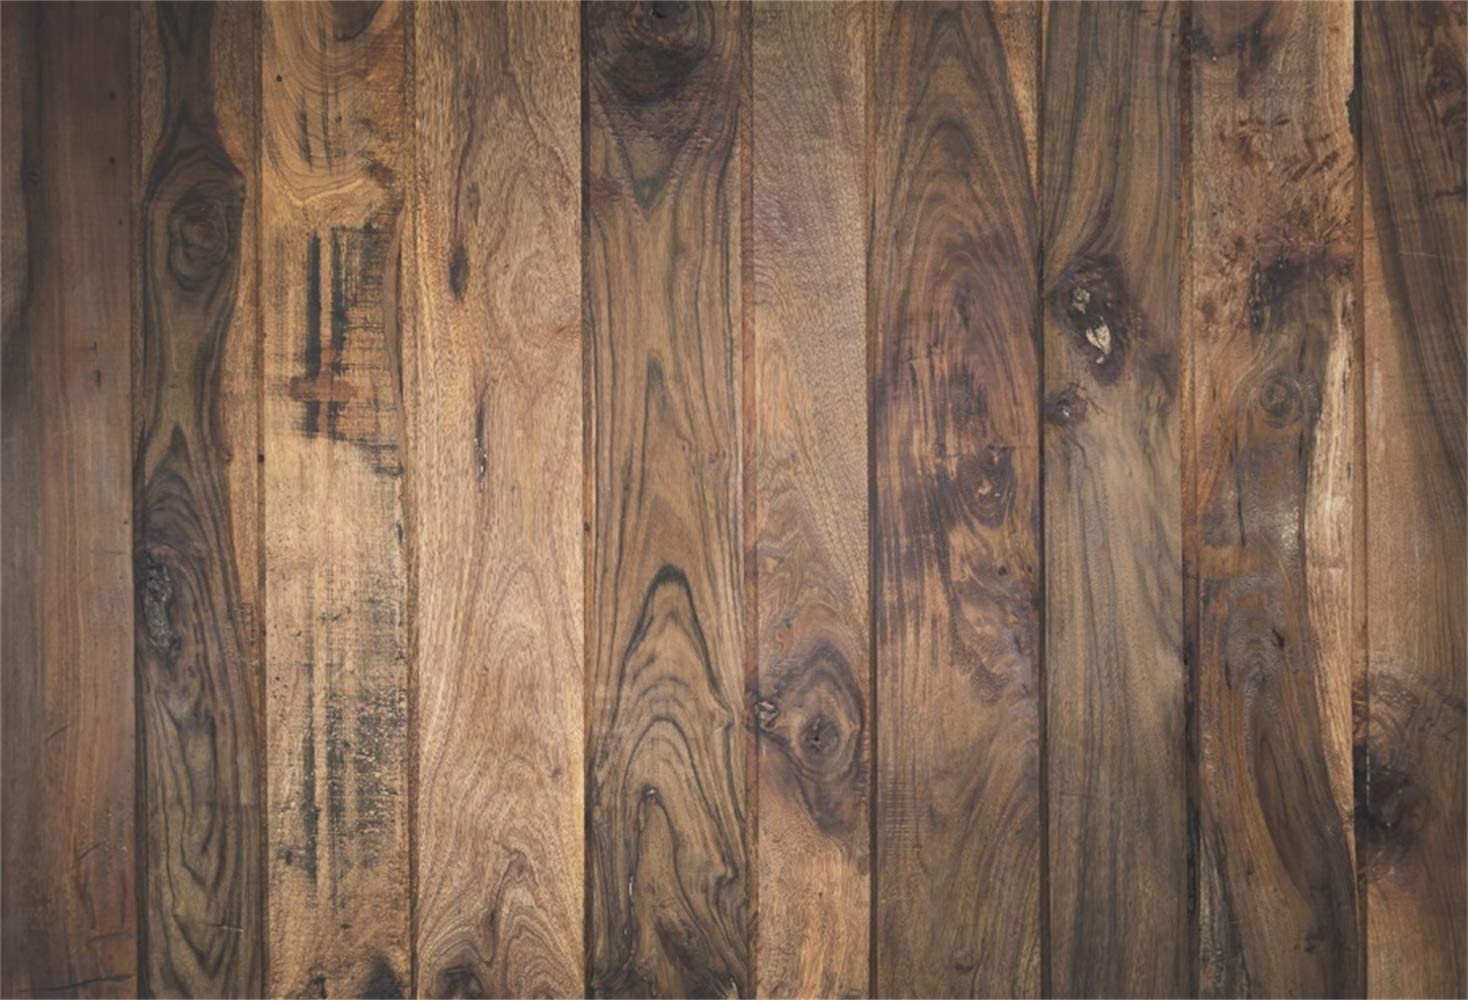 Laeacco Vintage Rustic Wood Teture Wall Backdrops Countryside 90cm x 60cm Vinyl Photography Backdrop Grunge Retro Vertical Striped Wood Plank Background Children Adult Rural Style Portrais Old Barn